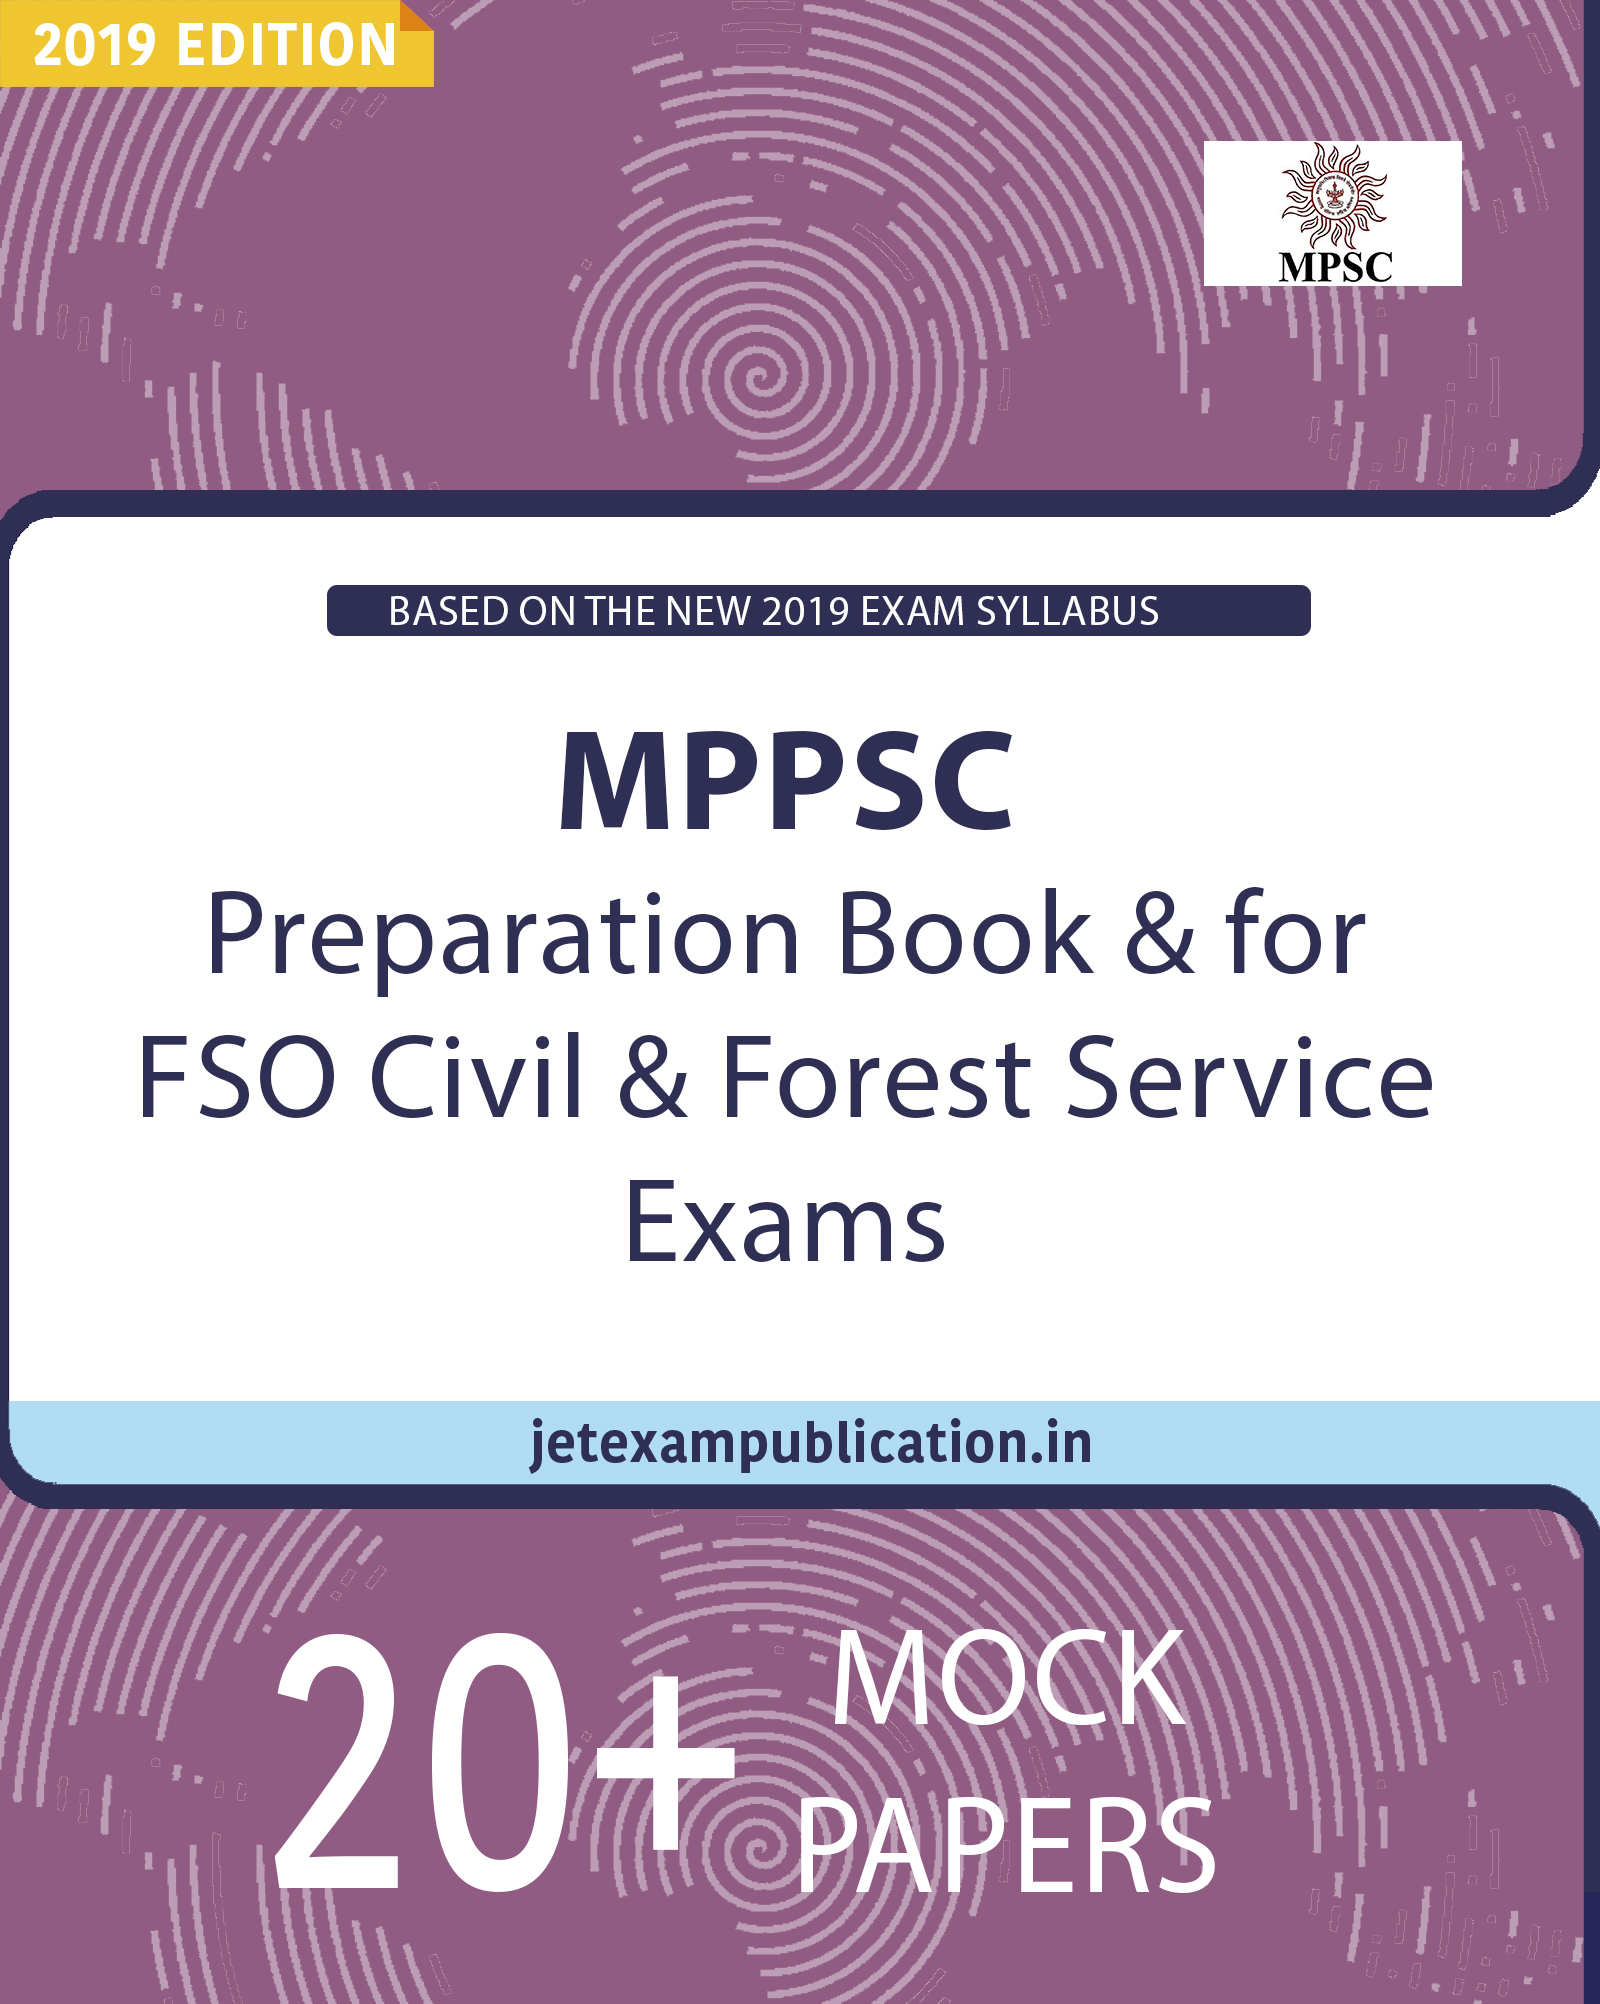 MPPSC Preparation Book & for FSO Civil & Forest Service Exams